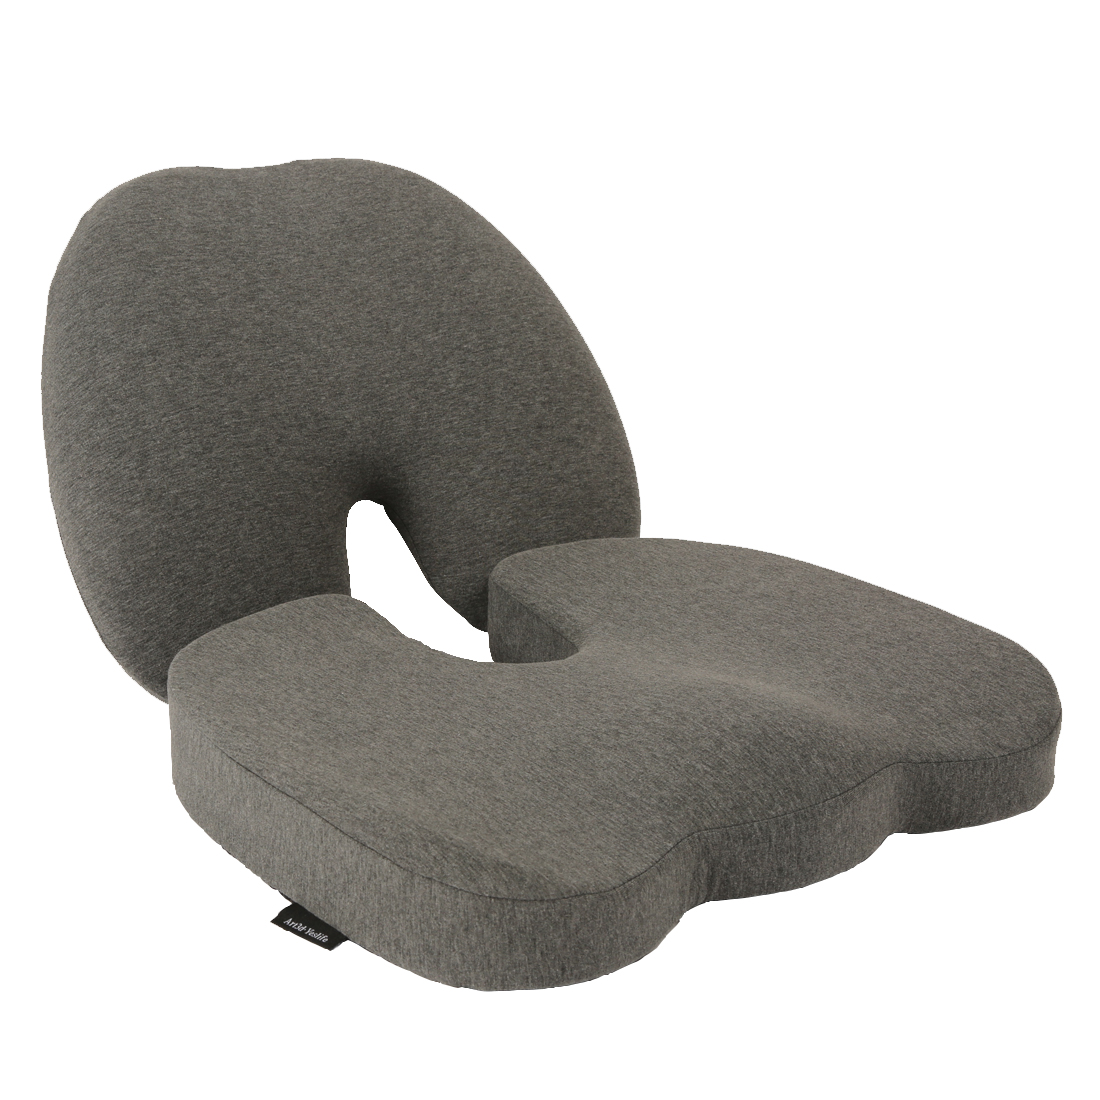 Premium Memory Foam Lumbar Support Pillow and Seat Cushion Coccyx Orthopedic, Set of 2, Dark Gray